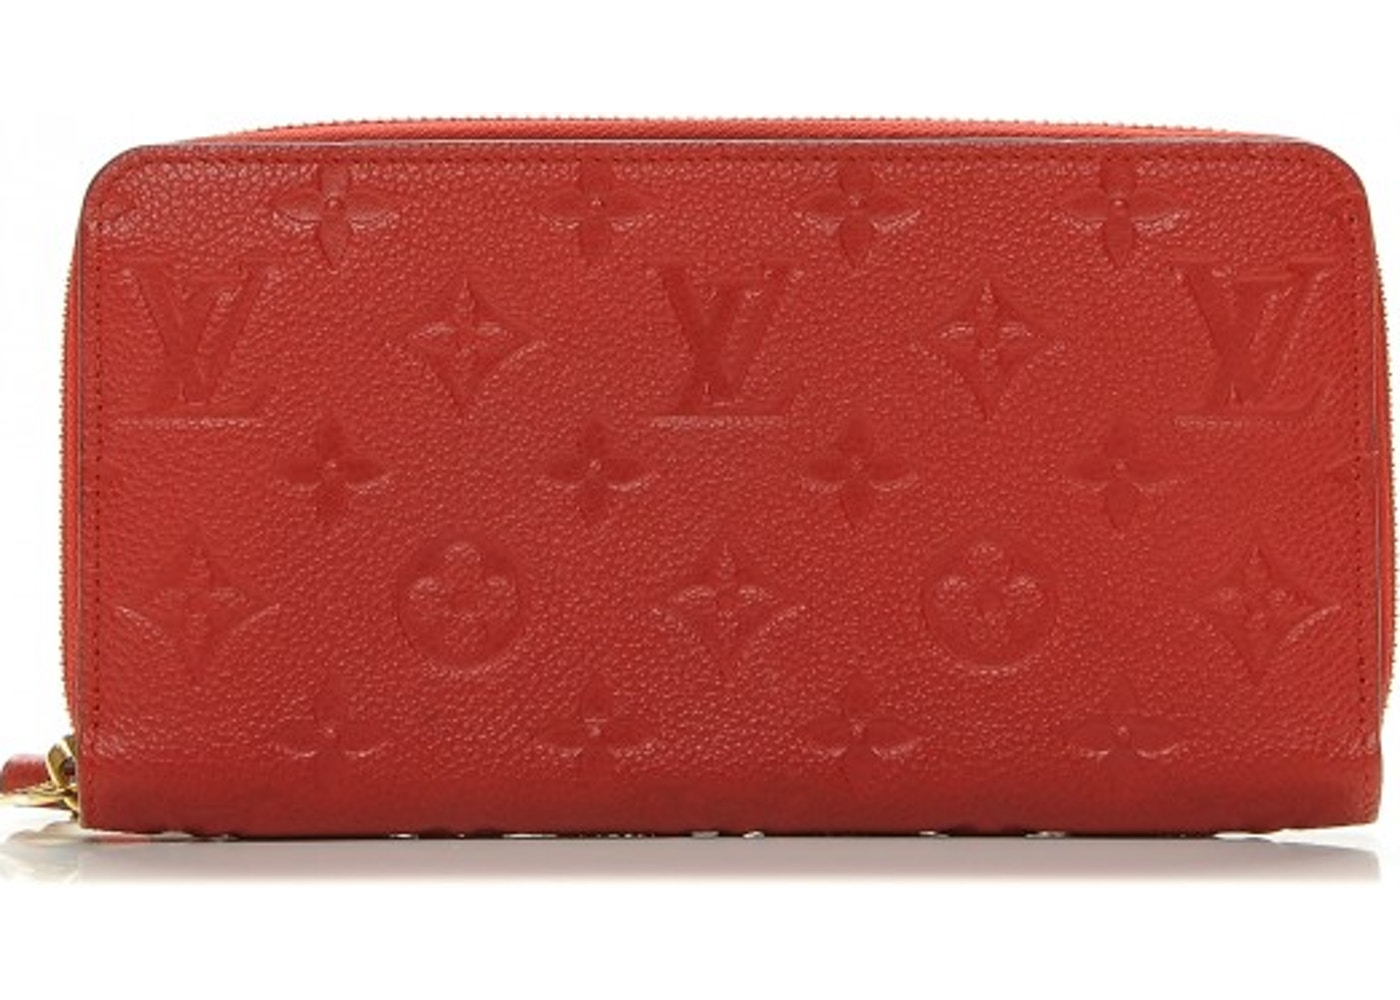 Louis Vuitton Zippy Wallet Monogram Empreinte Cerise Cherry. Monogram  Empreinte Cerise Cherry 3645dd41d